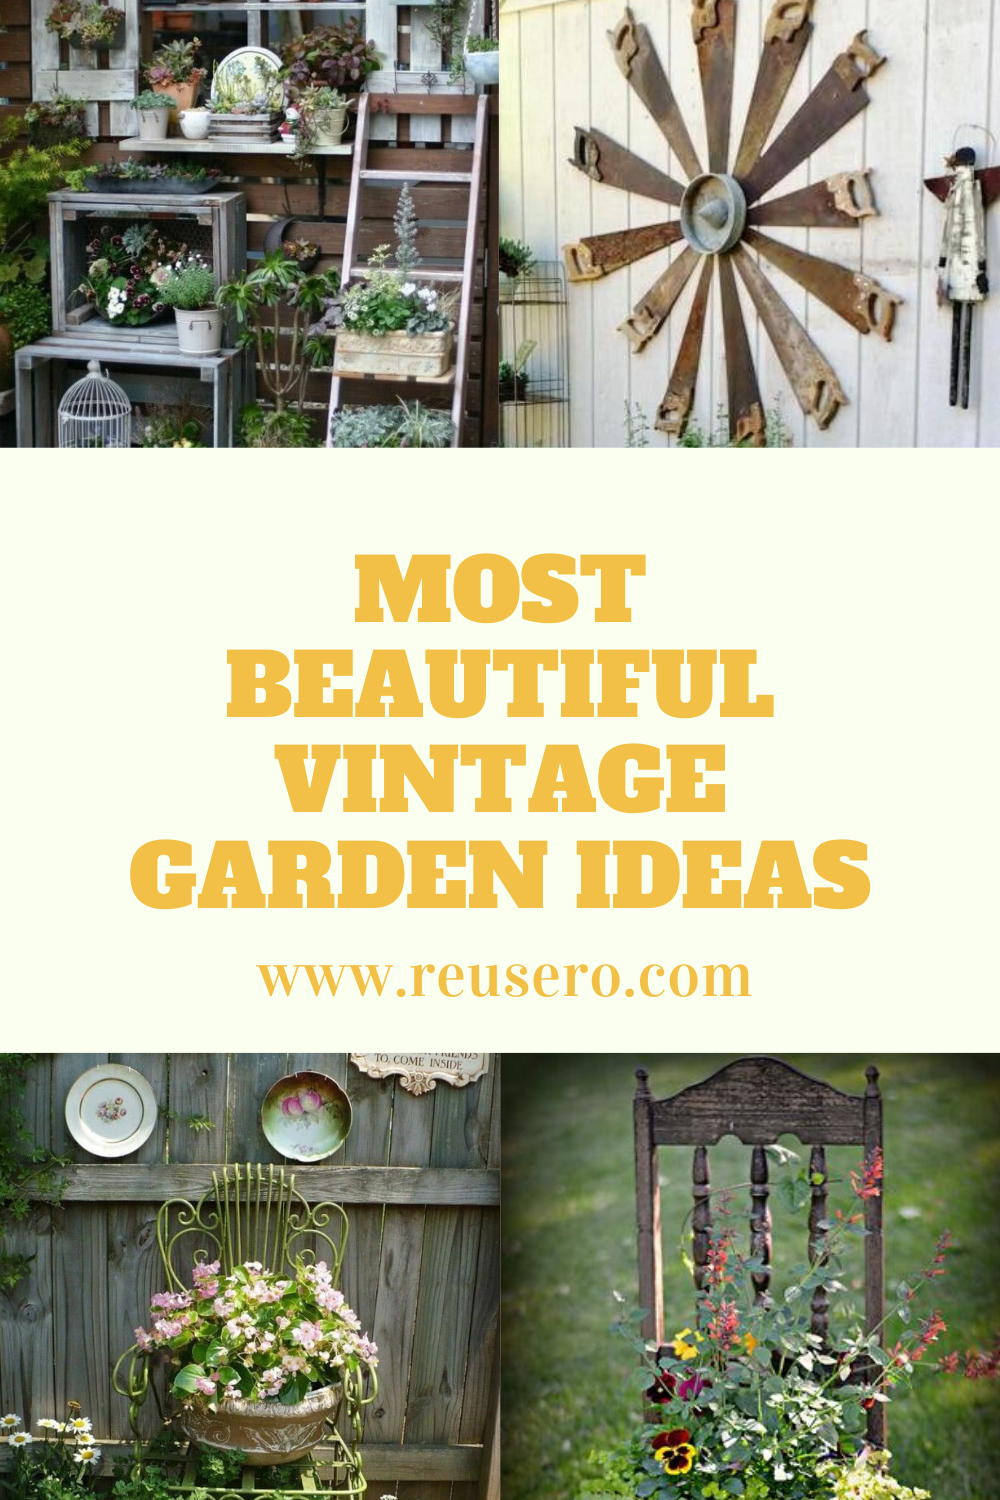 Upcycle Projects And Ideas For Garden Diy Upcycled Household Items And Junk Into Furniture Decor Vintage Garden Diy Garden Garden